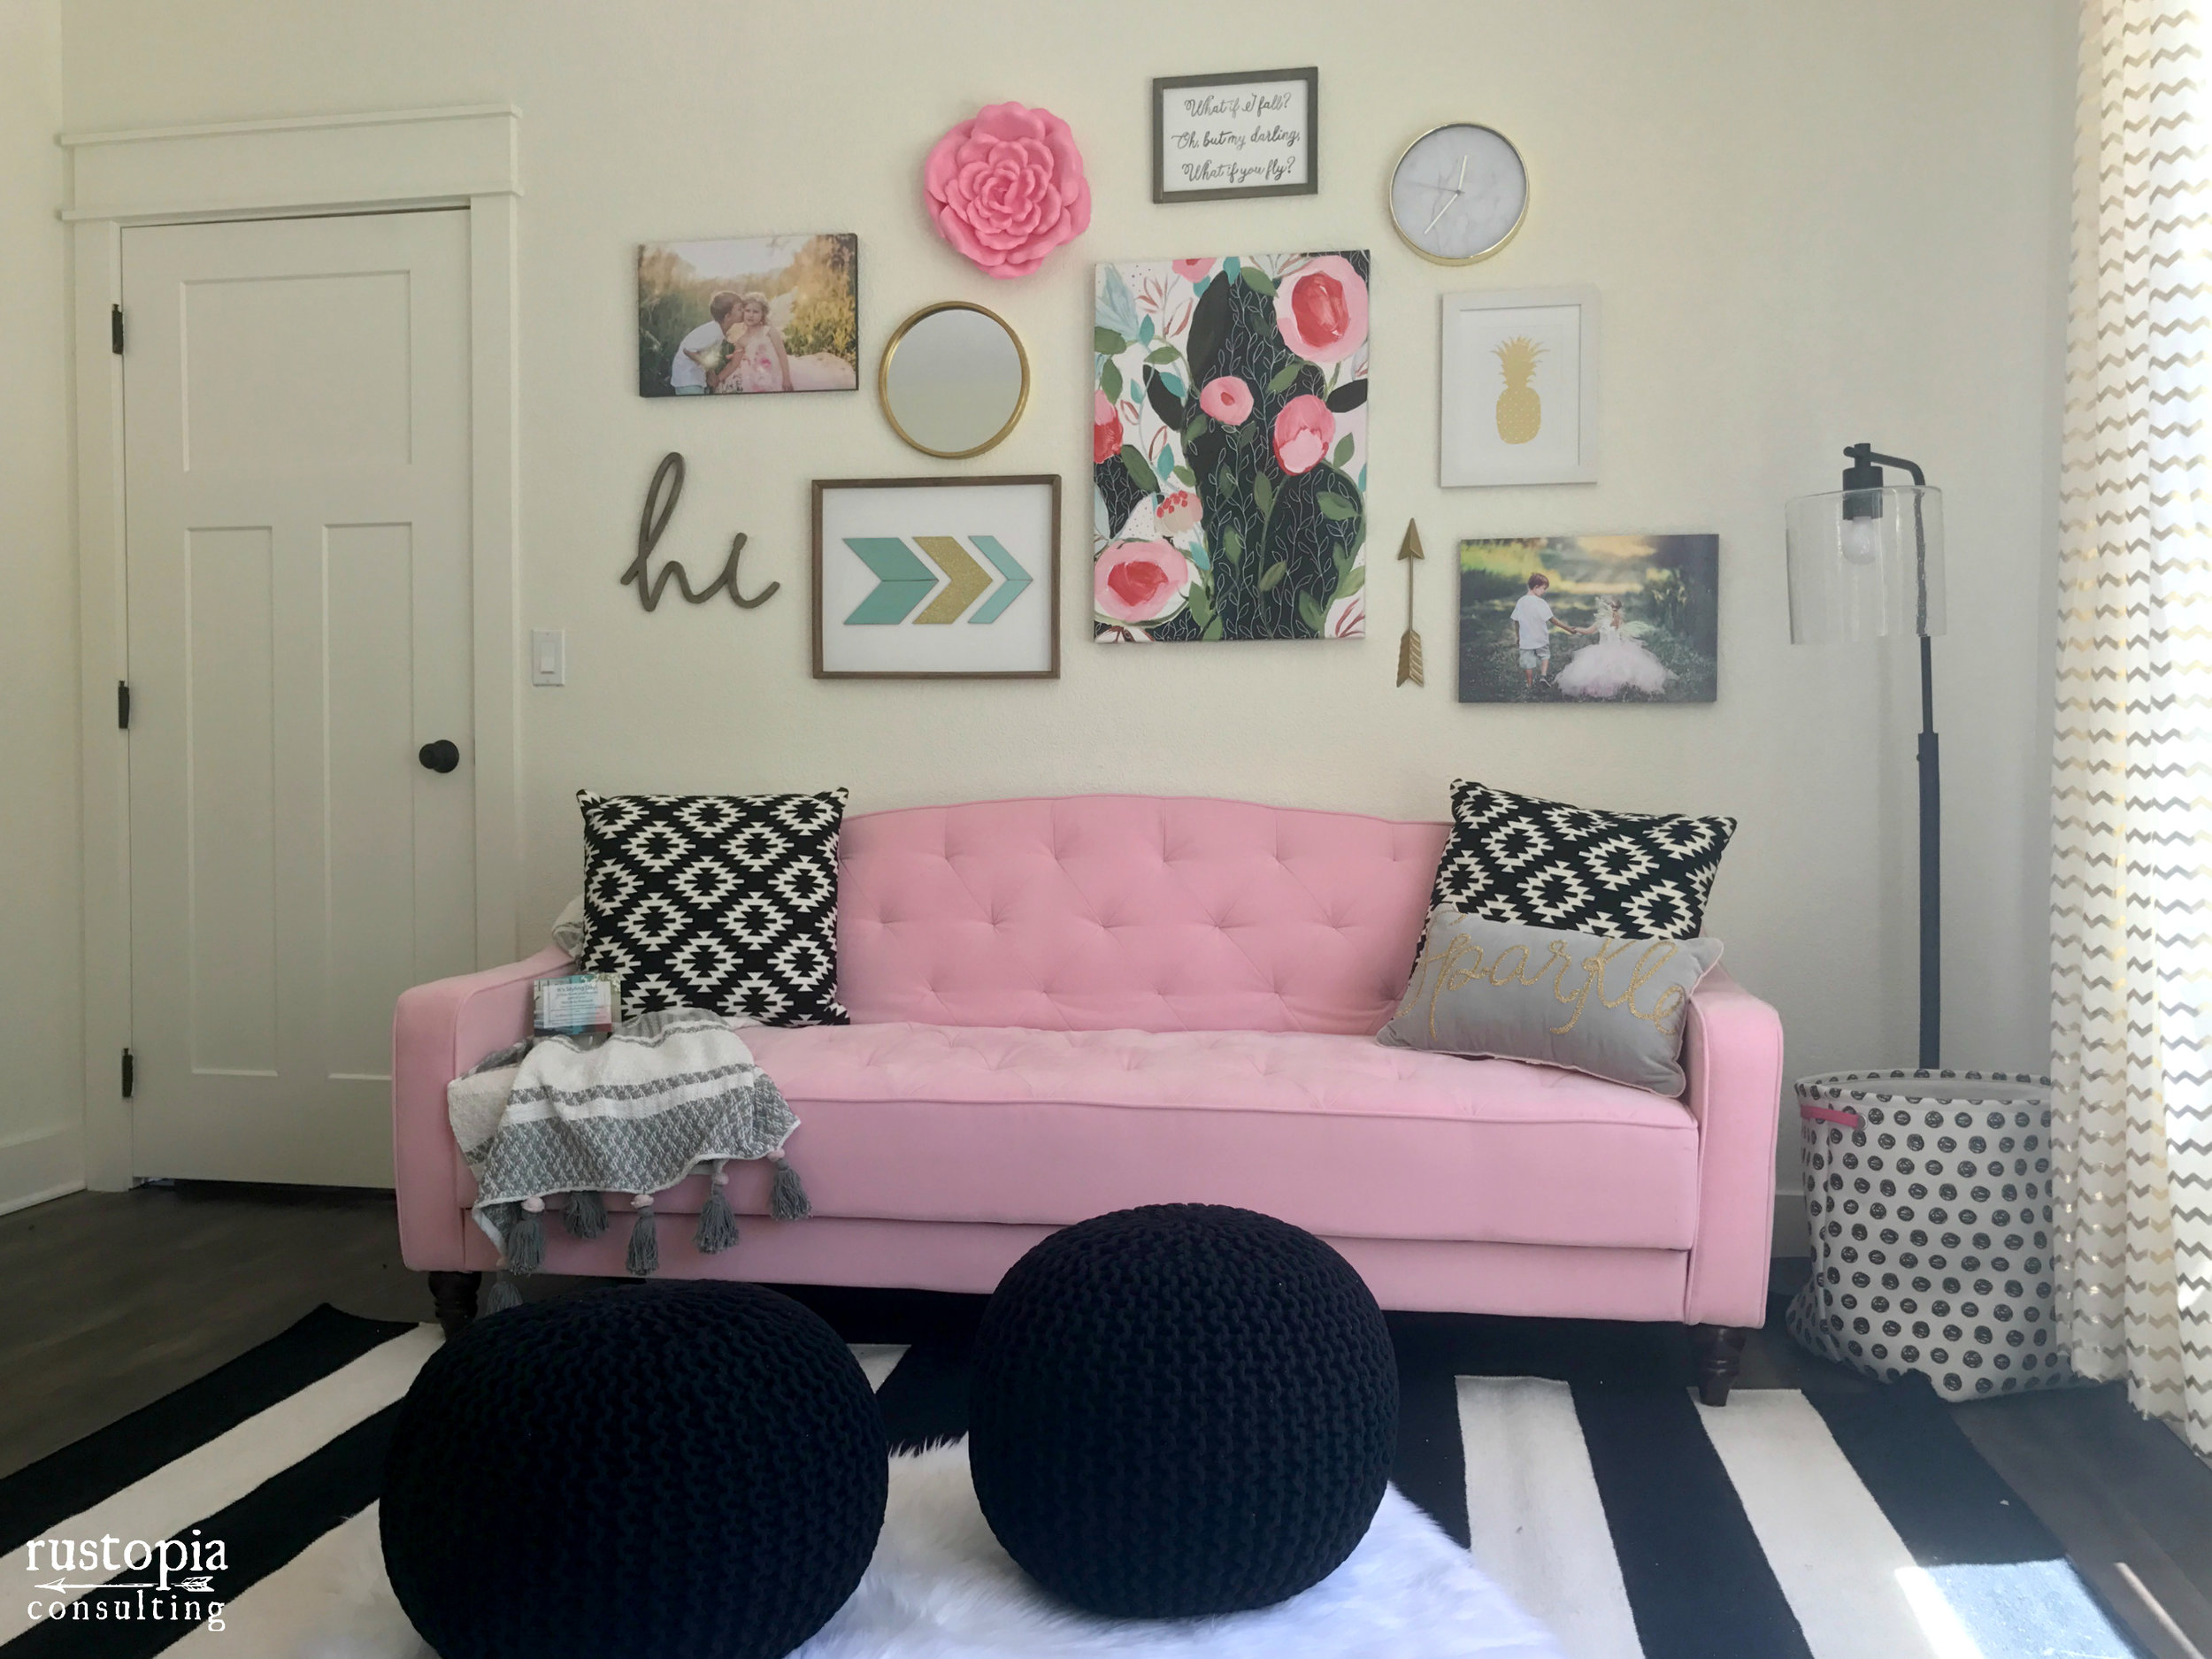 Home office with a pink couch, a gallery wall, and black floor poufs by RustopiaConsulting.com